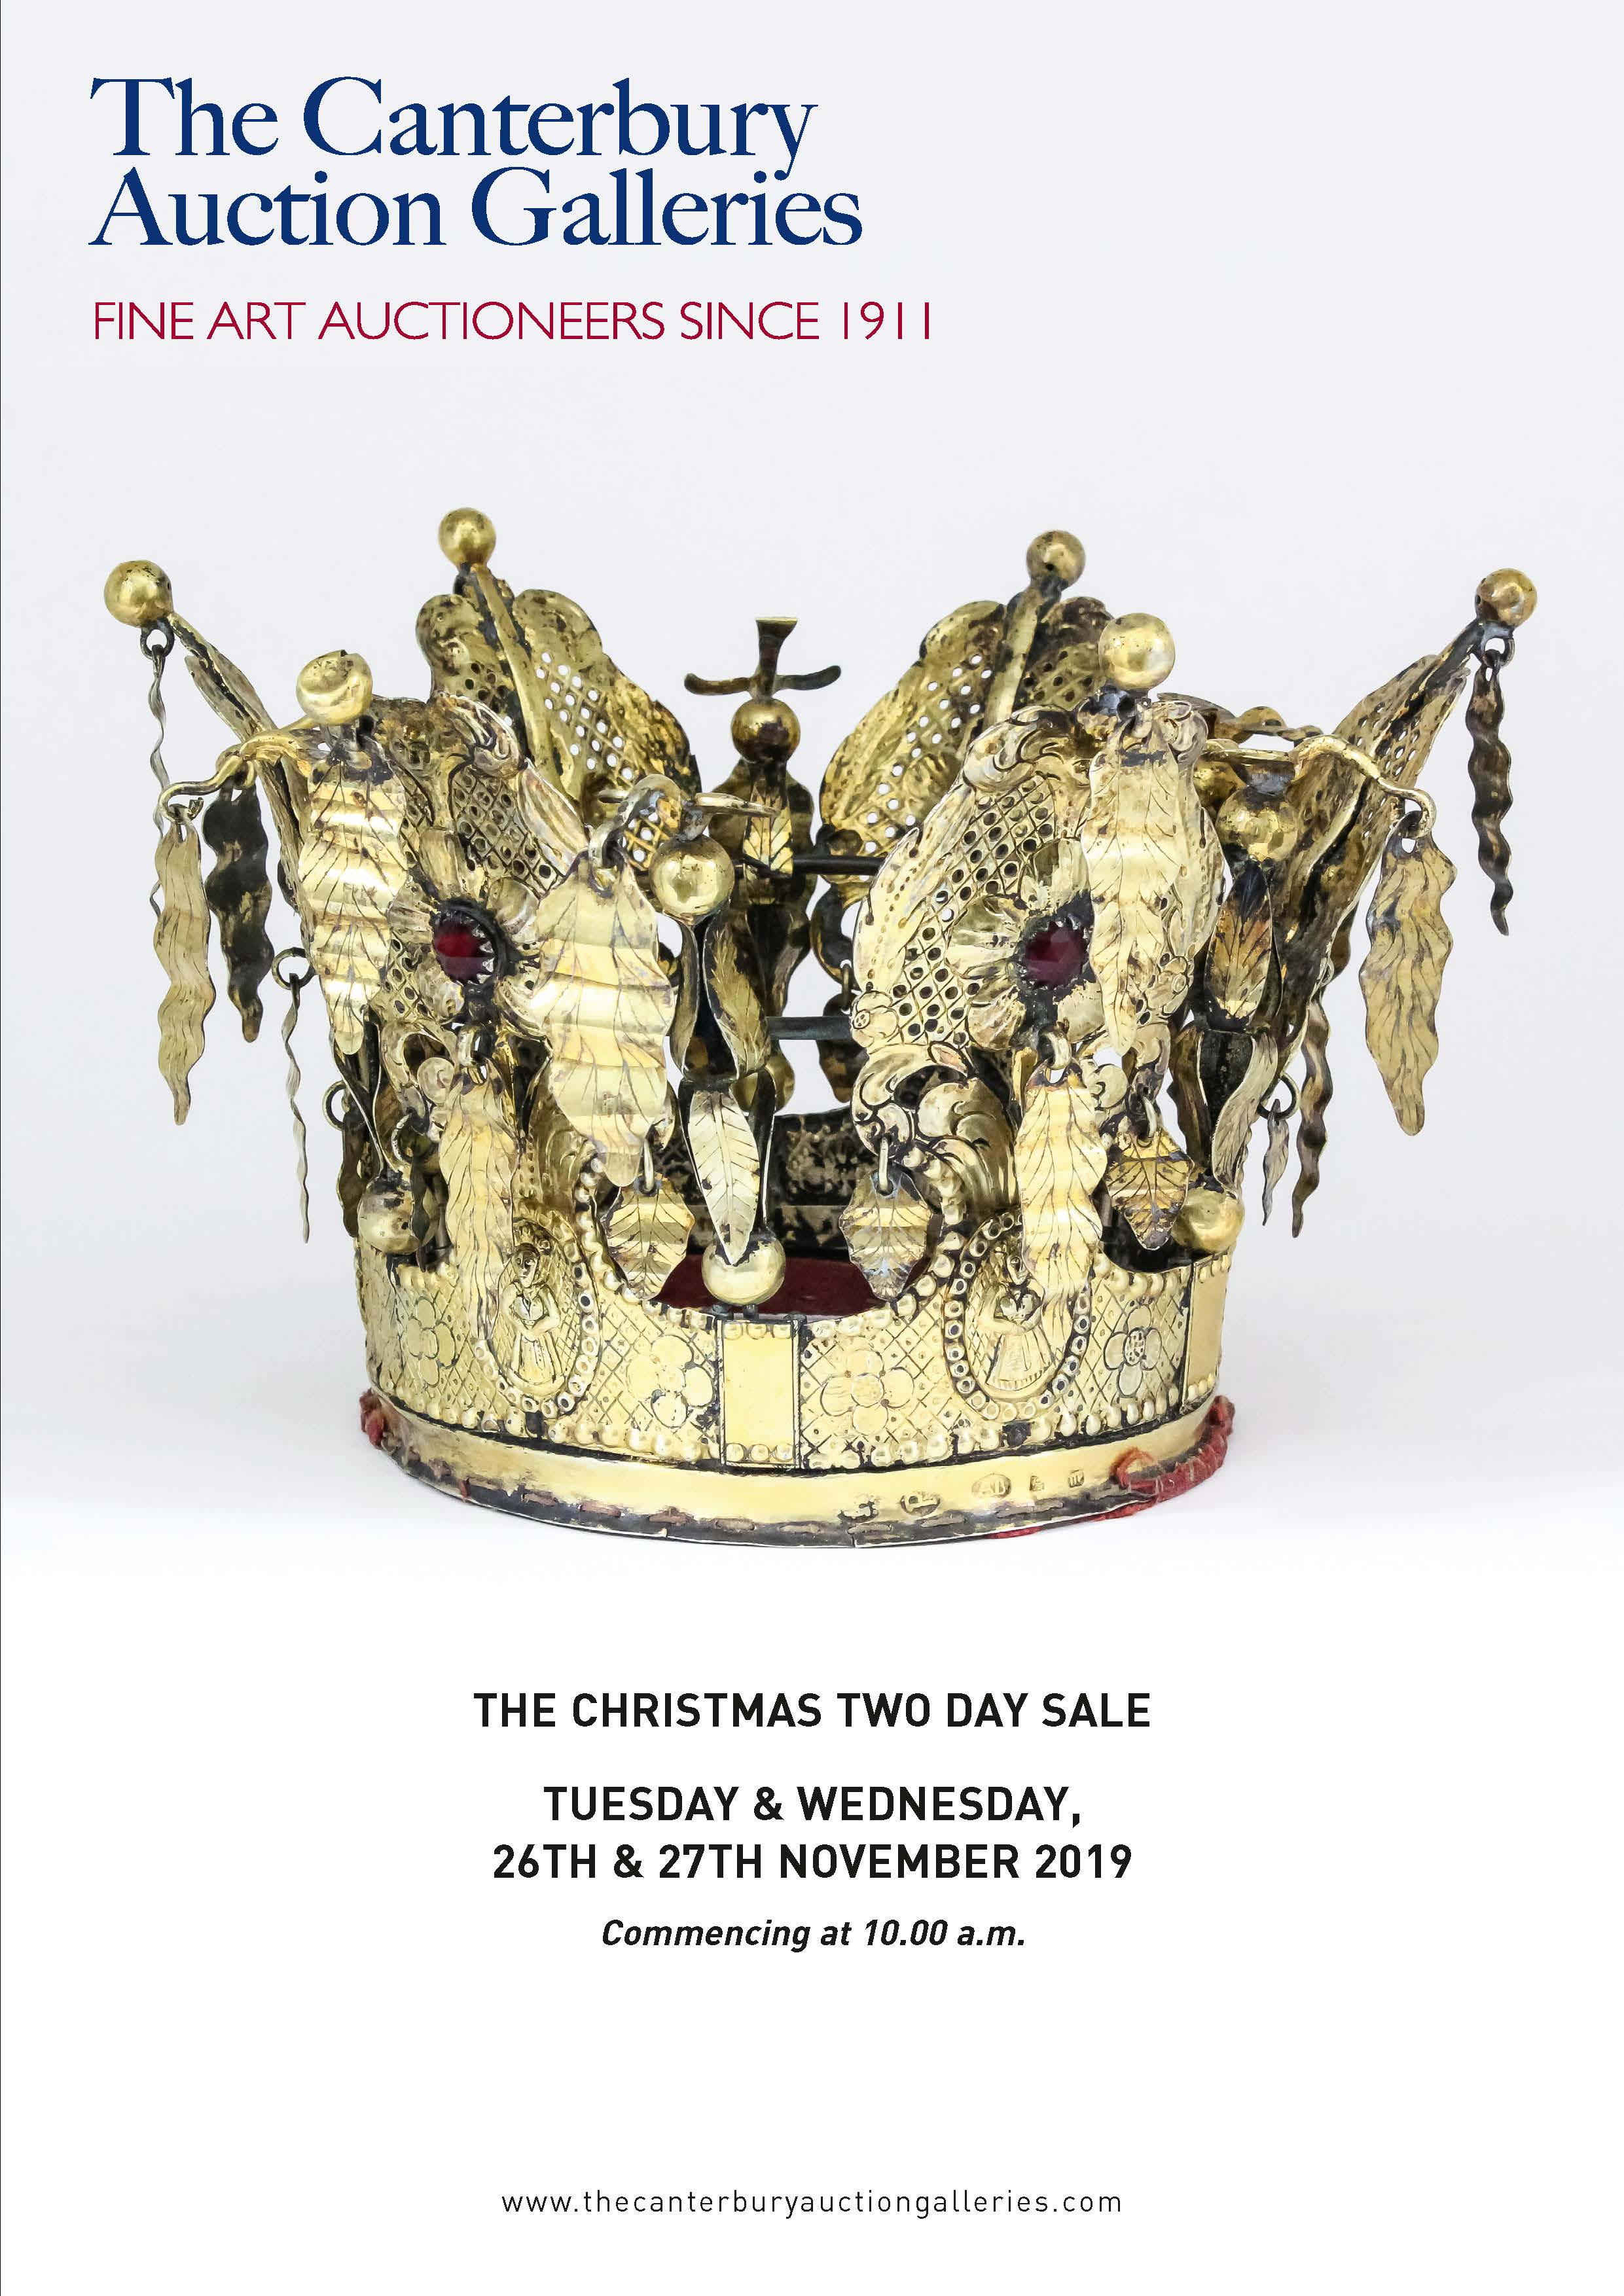 Day 2 - The Christmas Two Day Sale of Fine Art & Antiques